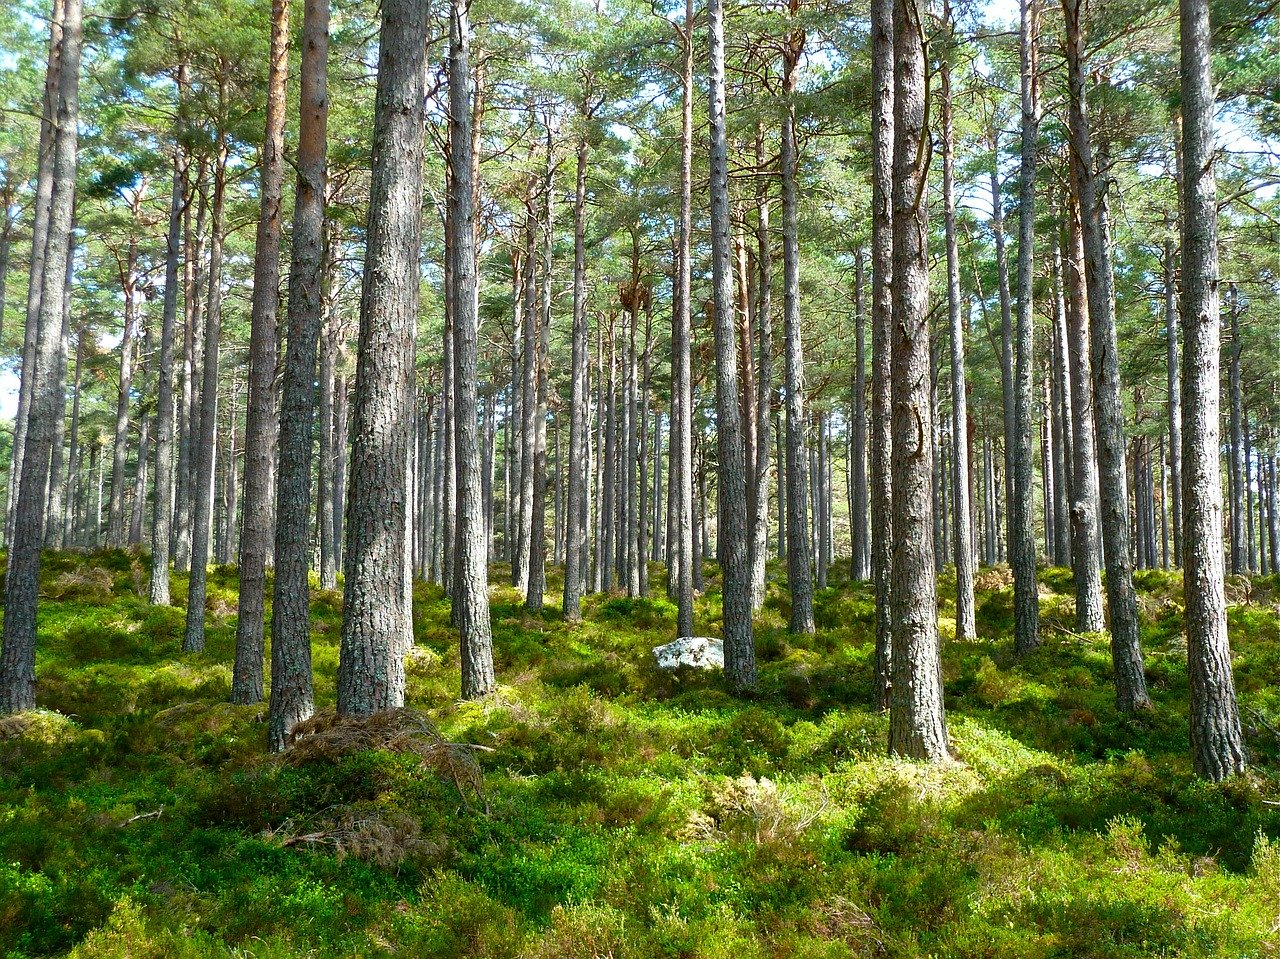 photograph of a forest